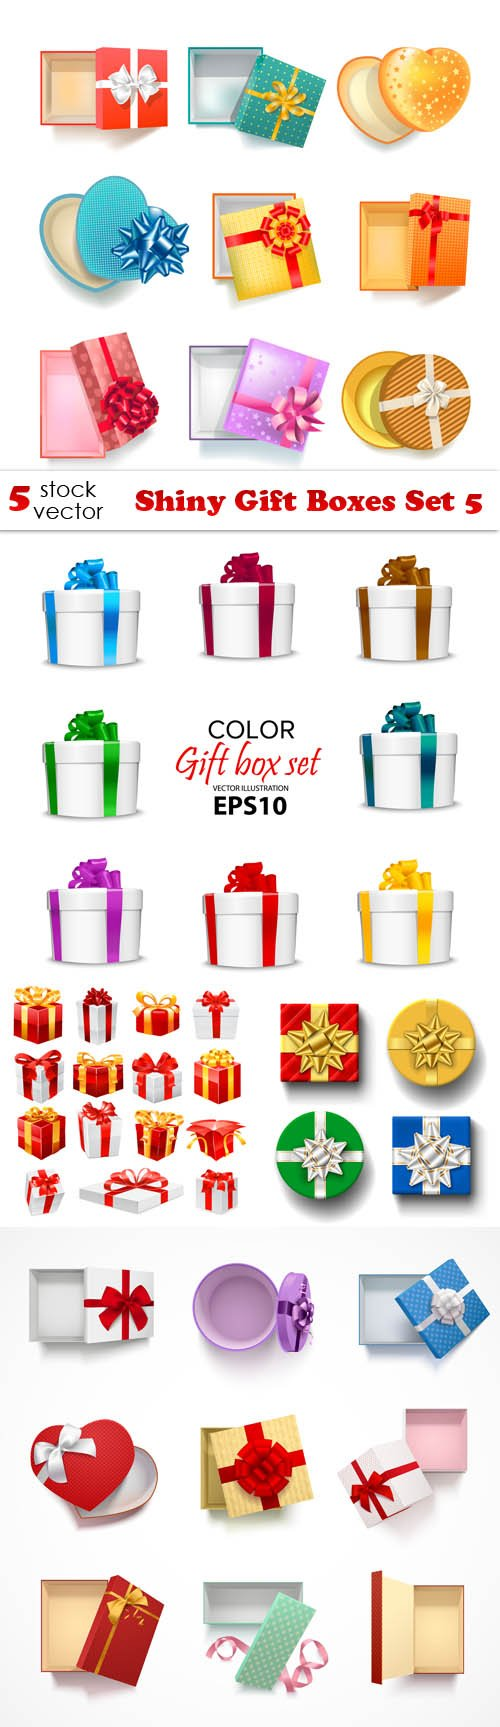 Vectors - Shiny Gift Boxes Set 5